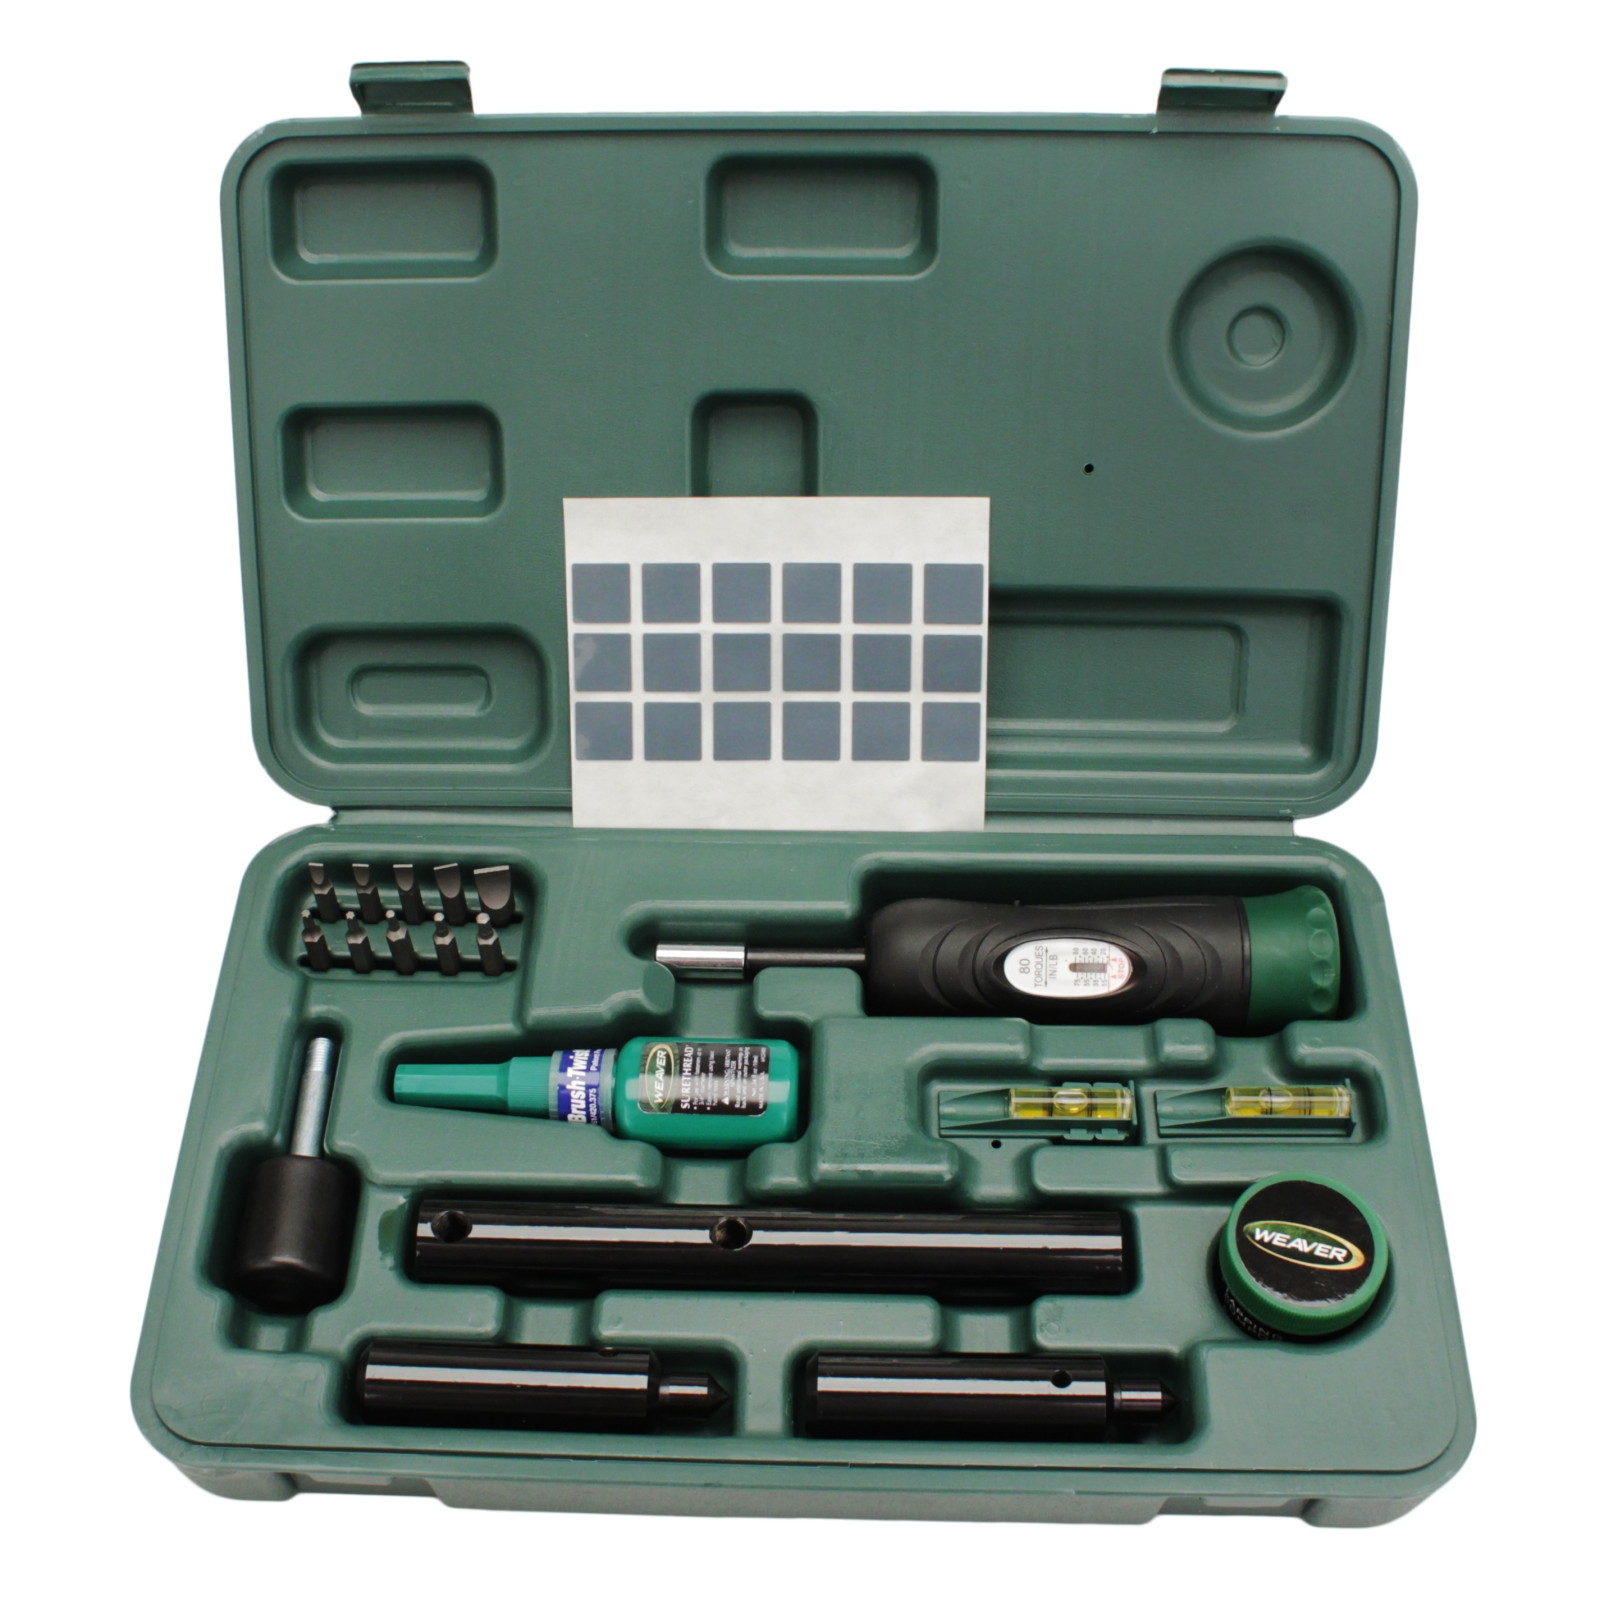 Weaver Deluxe 849721 Scope Mounting Kit Contains Precision Tools